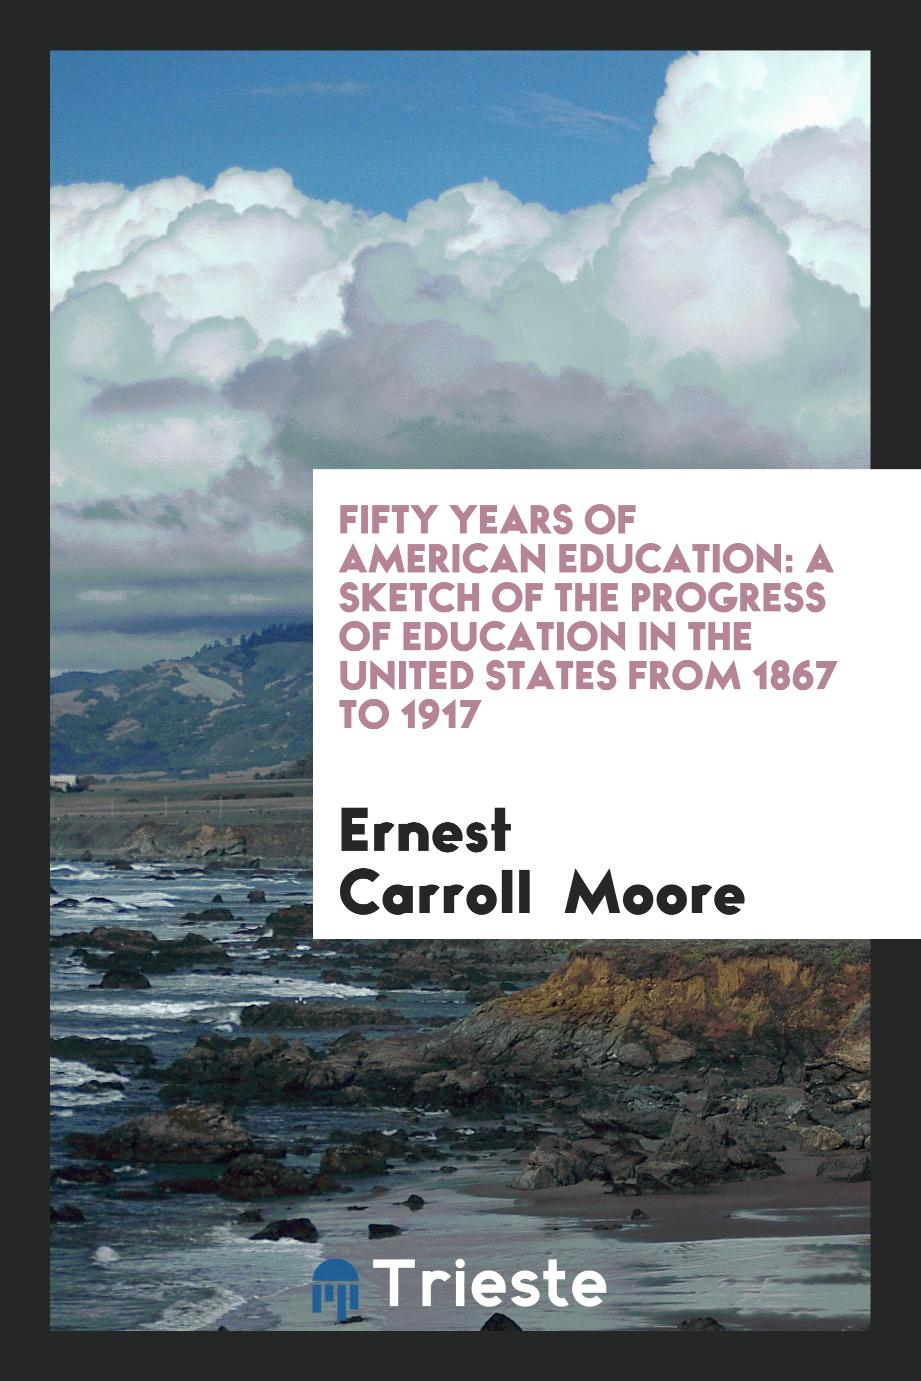 Fifty Years of American Education: A Sketch of the Progress of Education in the United States from 1867 to 1917